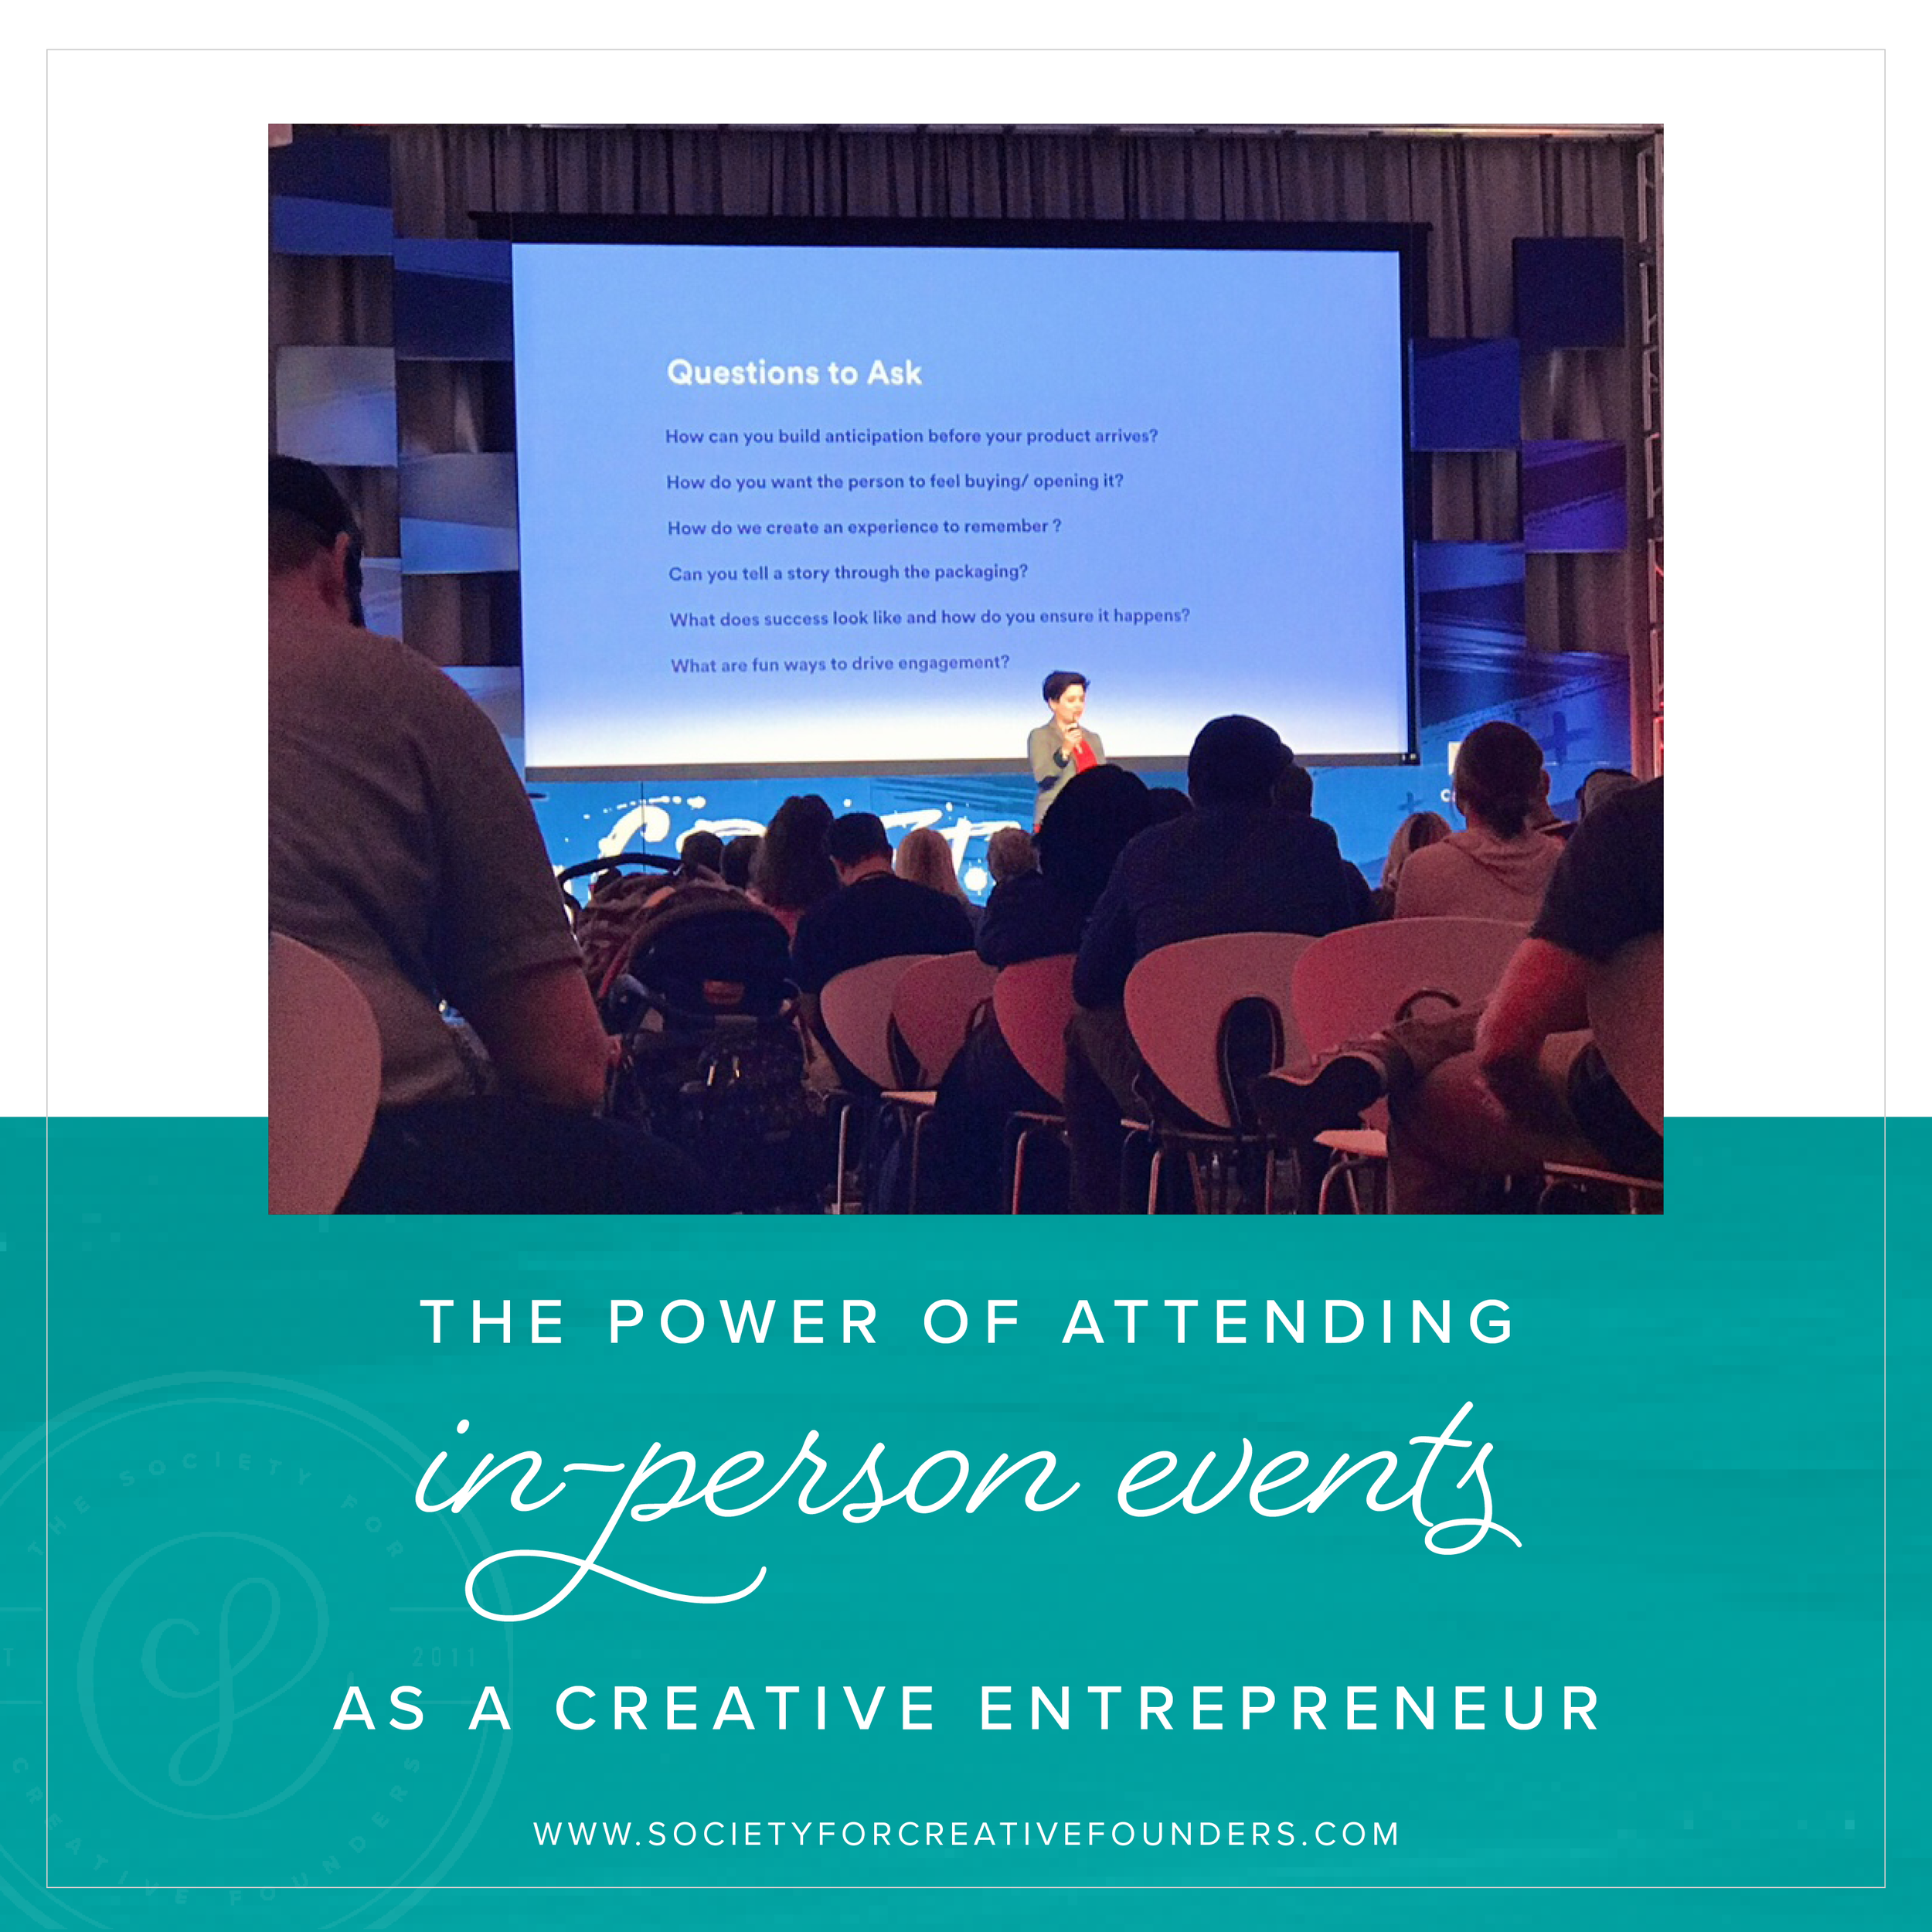 Why Creative Entrepreneurs should go to Conferences, Workshops, and Retreats by Society for Creative Founders